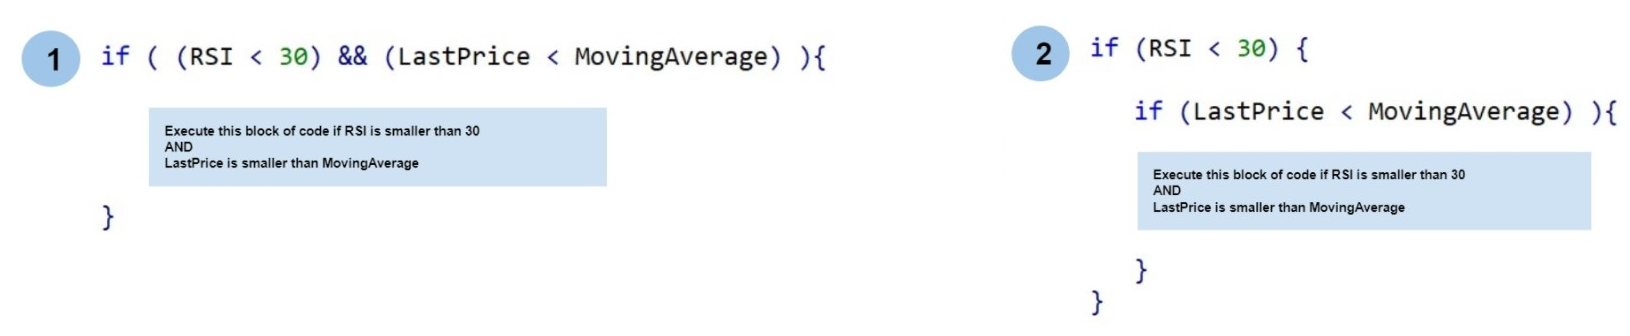 Multiple arguments in a single statement vs. nested if statements.